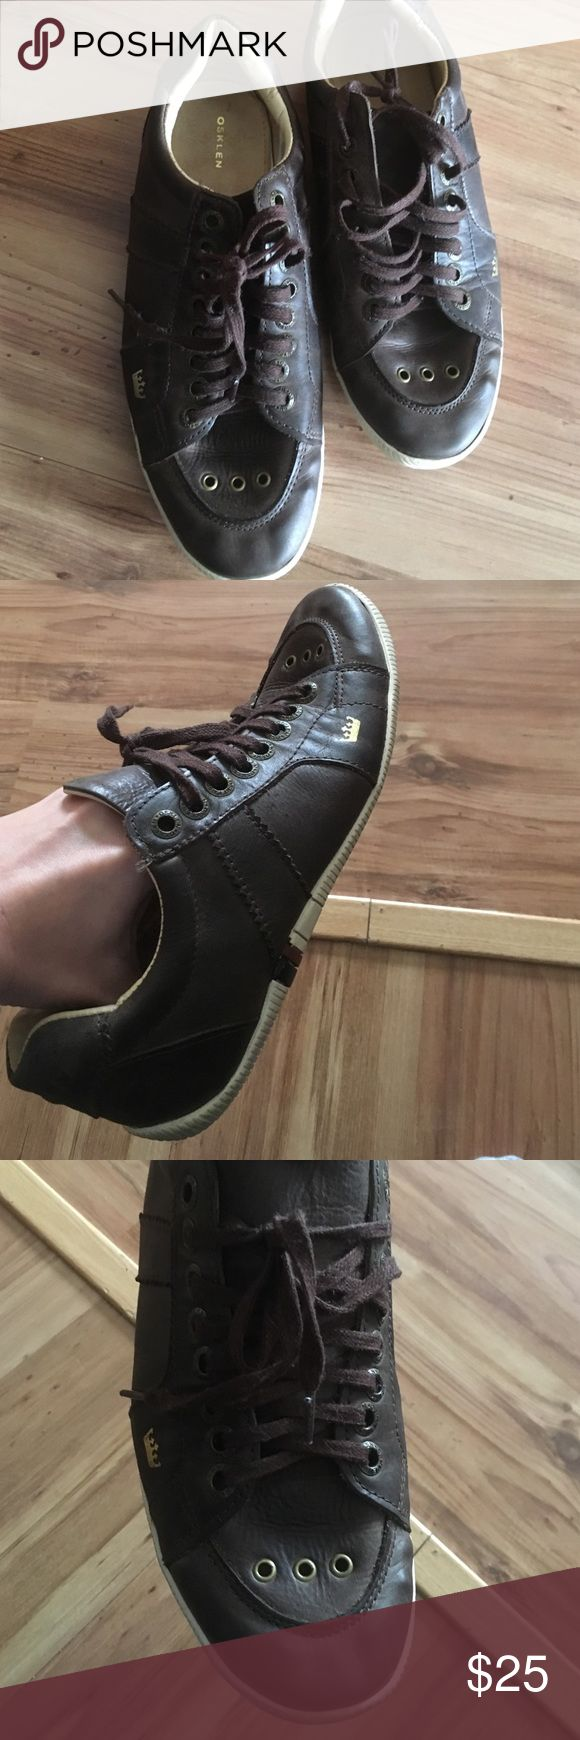 Osklen shoes. Like new Brown leather. Made in Brazil. Osklen Shoes Sneakers